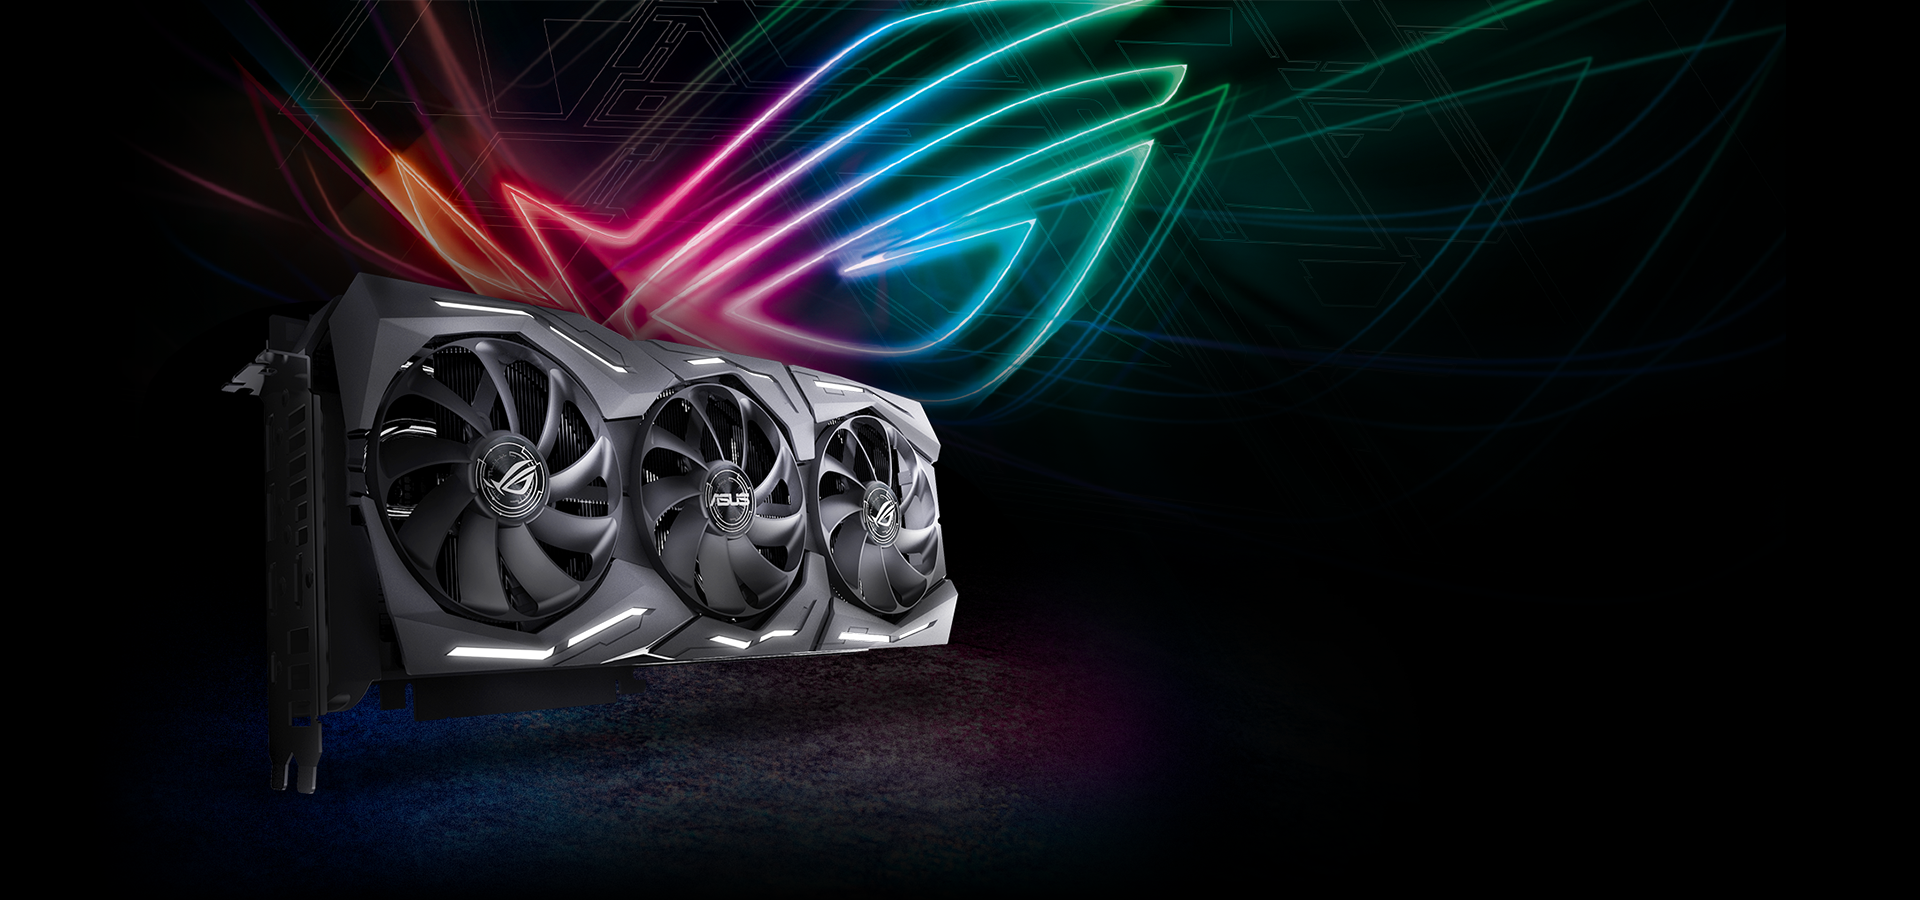 Card màn hình Asus Rog Strix GeForce RTX 2080 Super Advanced 8GB GDDR6 (ROG-STRIX-RTX2080S-A8G-GAMING)_10